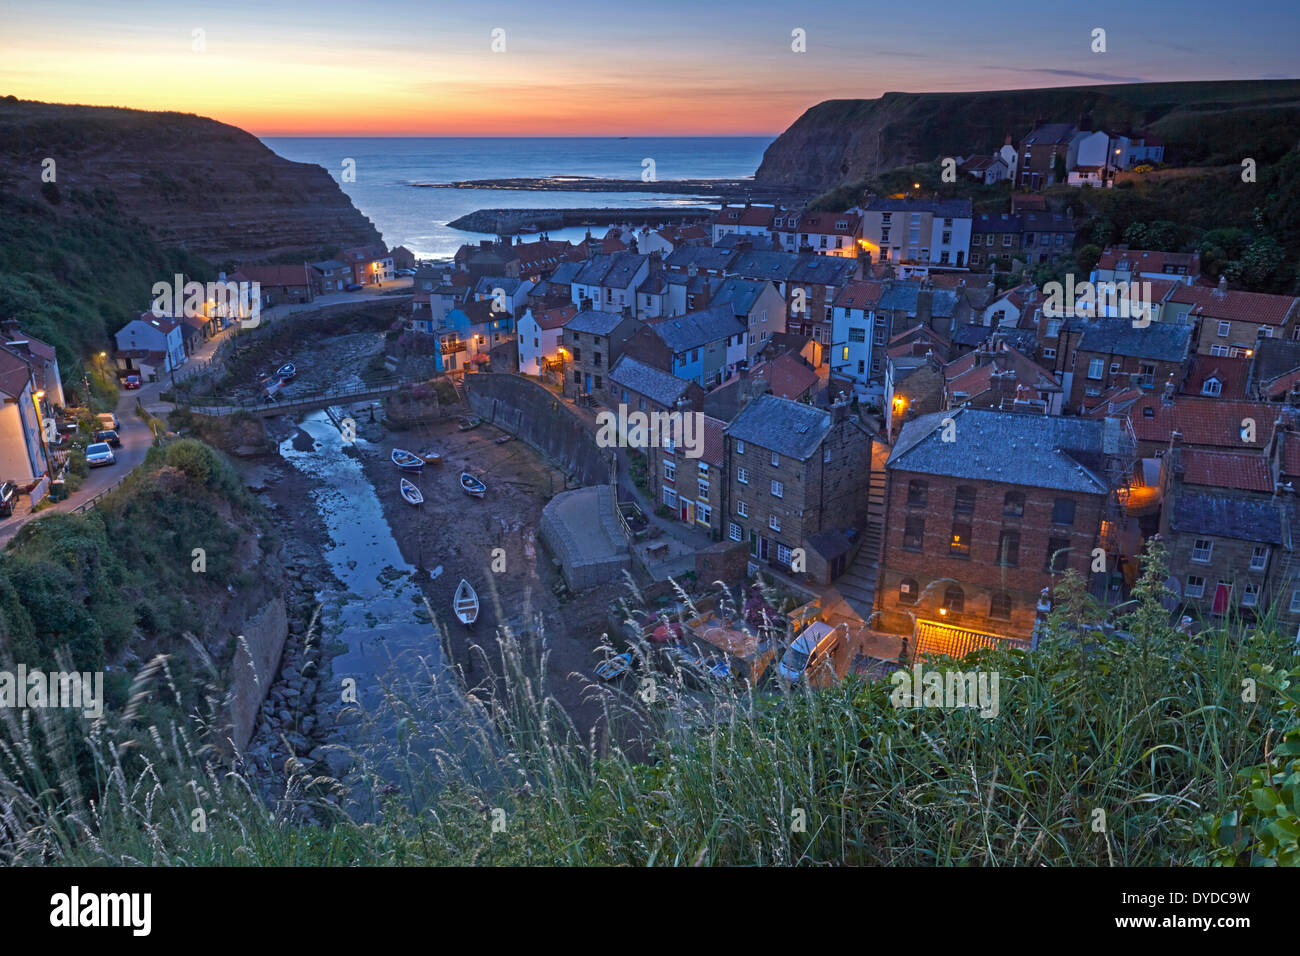 Dawn over the North Sea from Staithes. - Stock Image